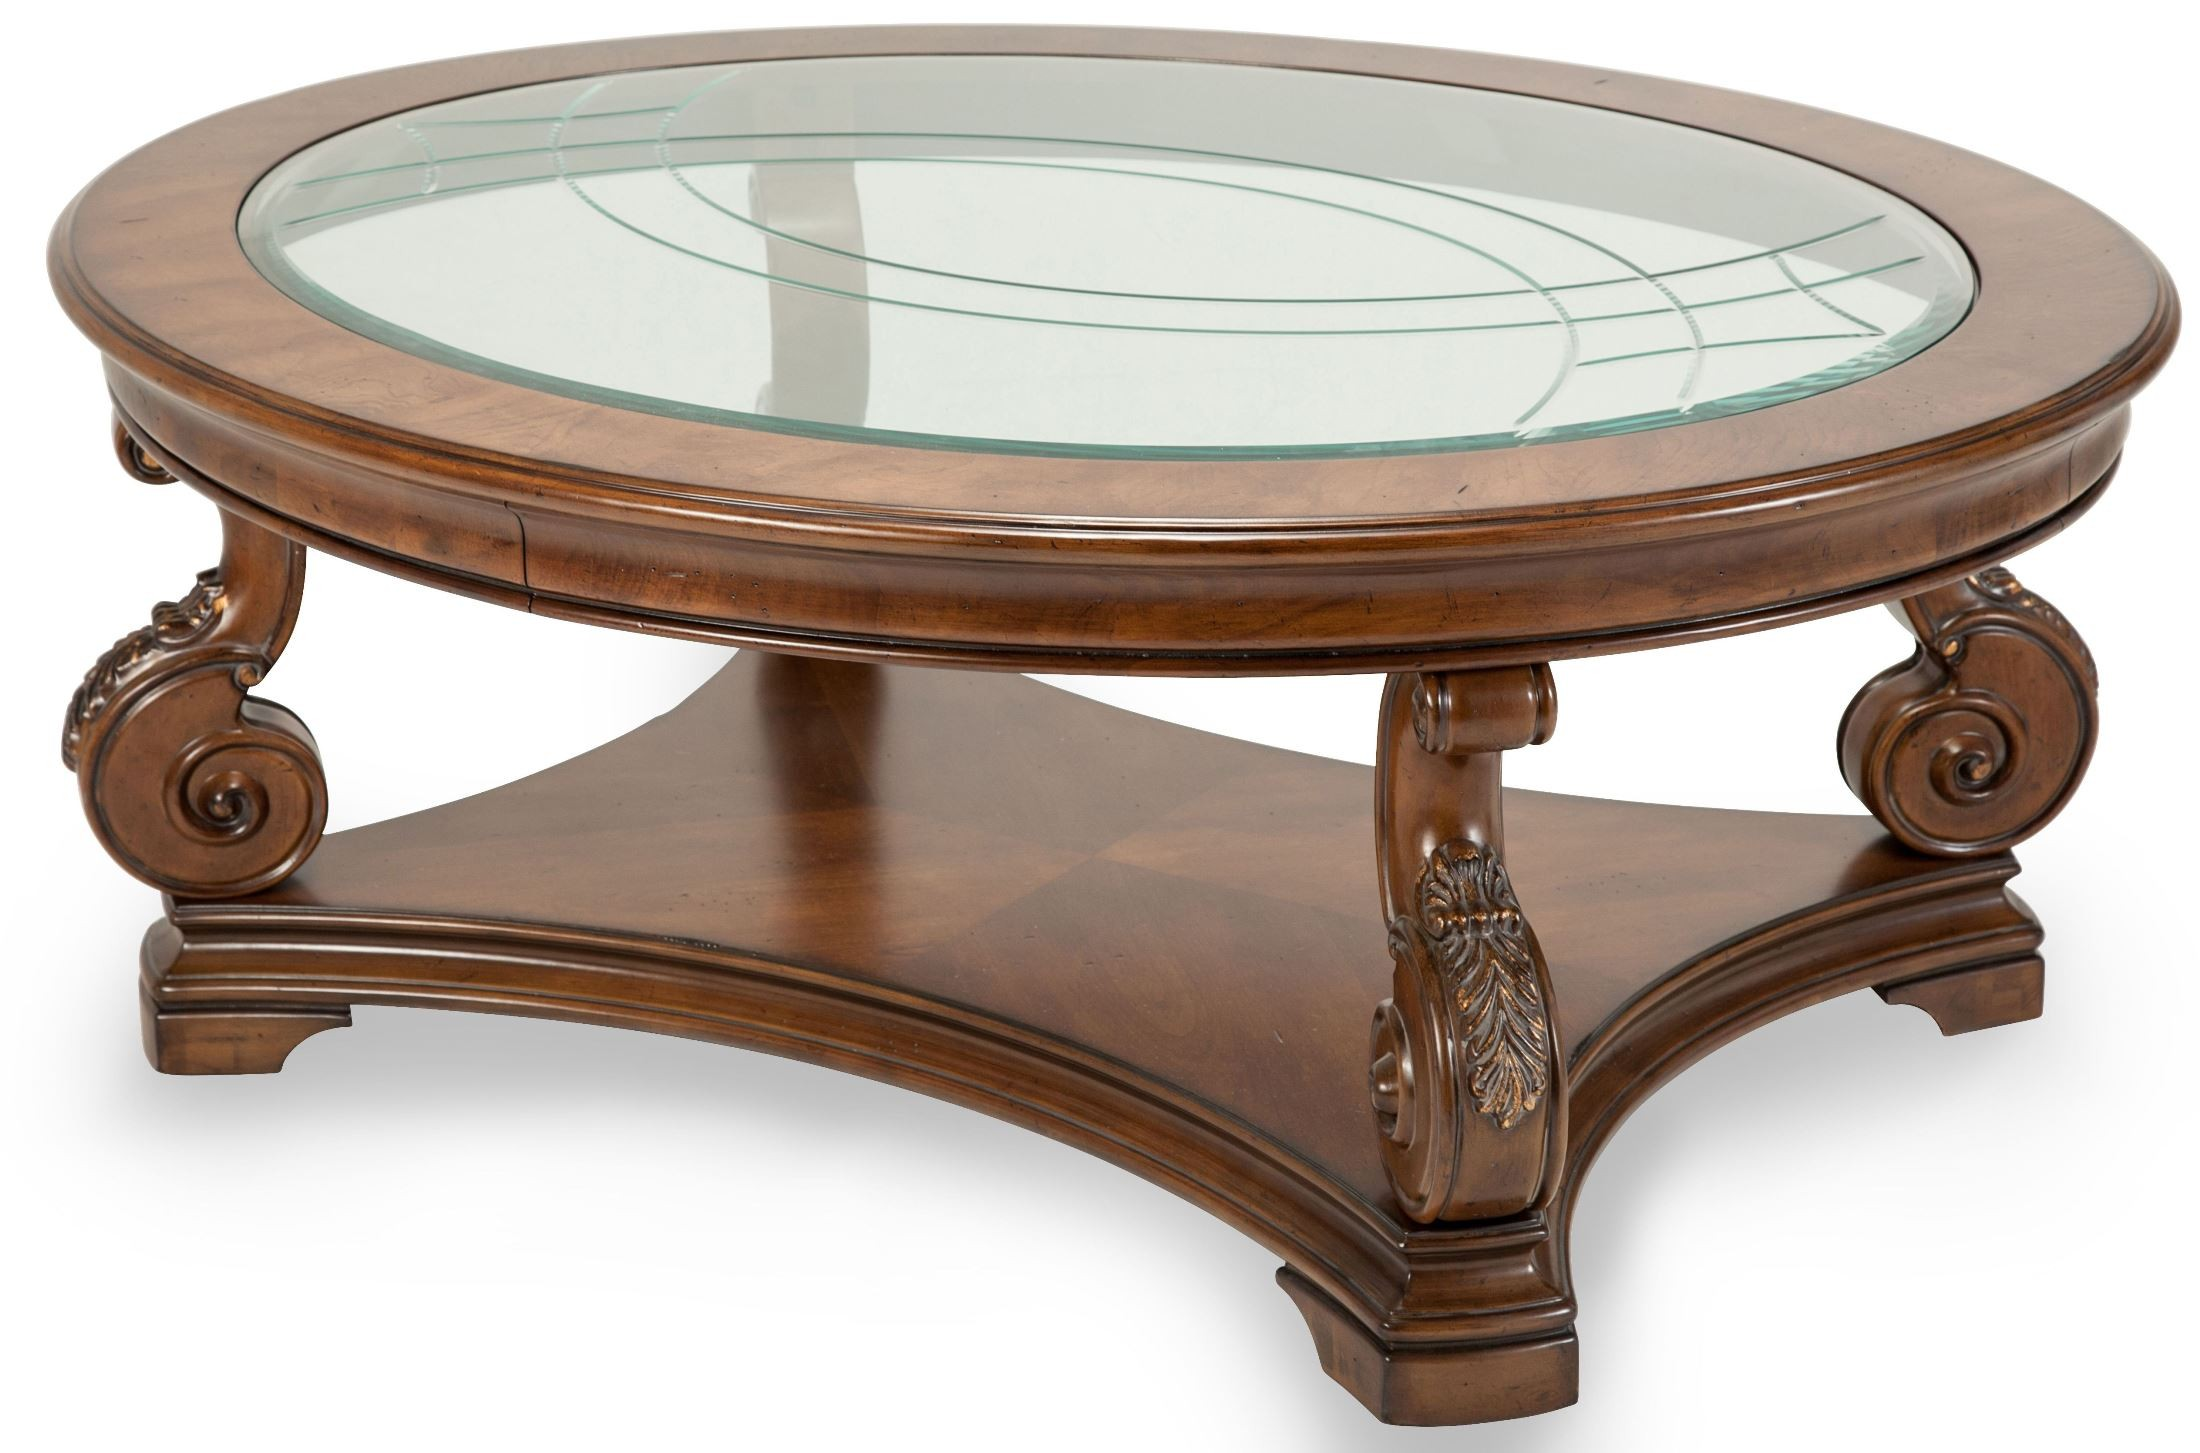 Victoria Palace Occasional Table Set From Aico 61201 29 Coleman Furniture